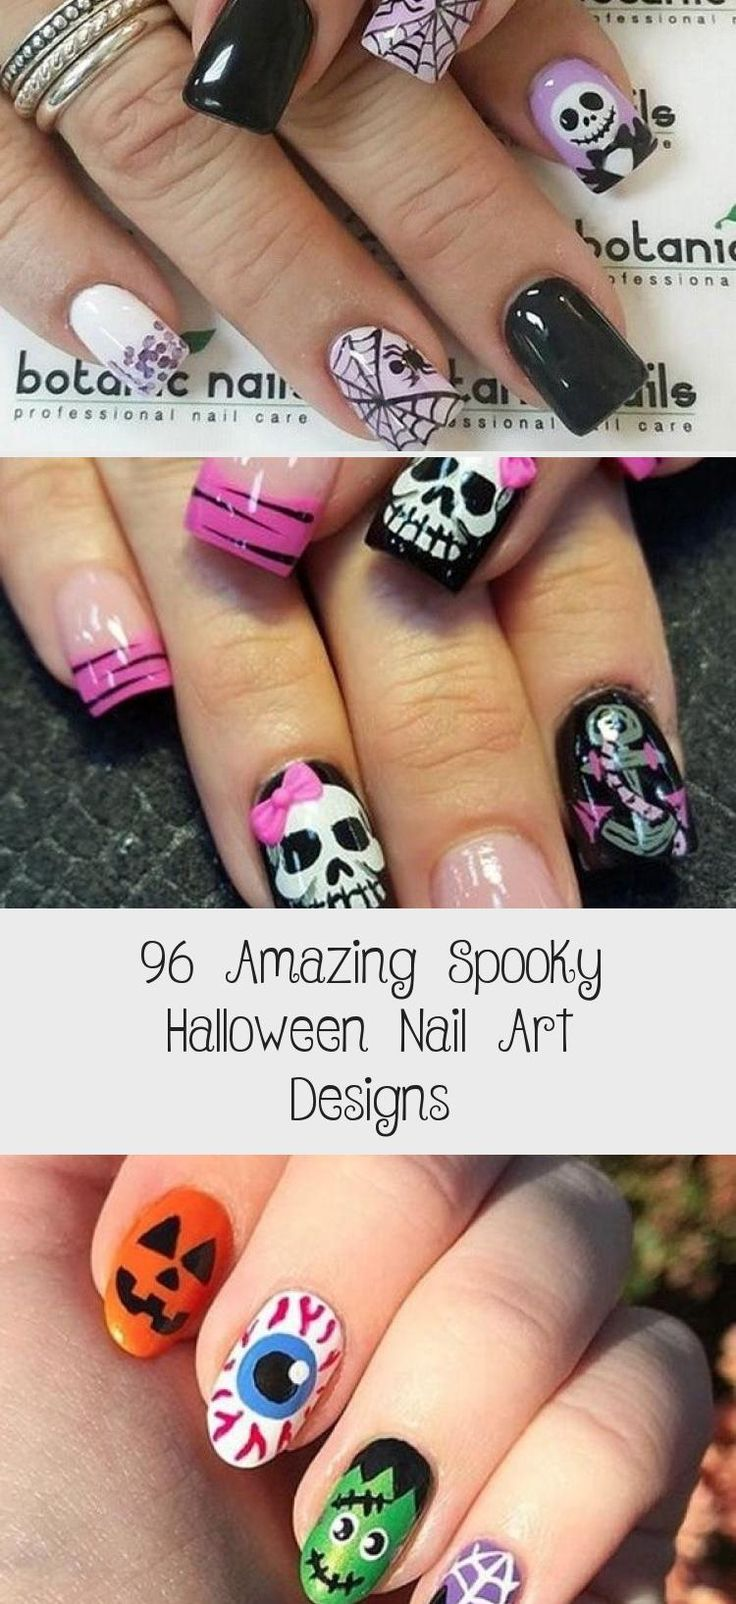 Hair Styles - in 2020 | Halloween nails diy, Halloween ...